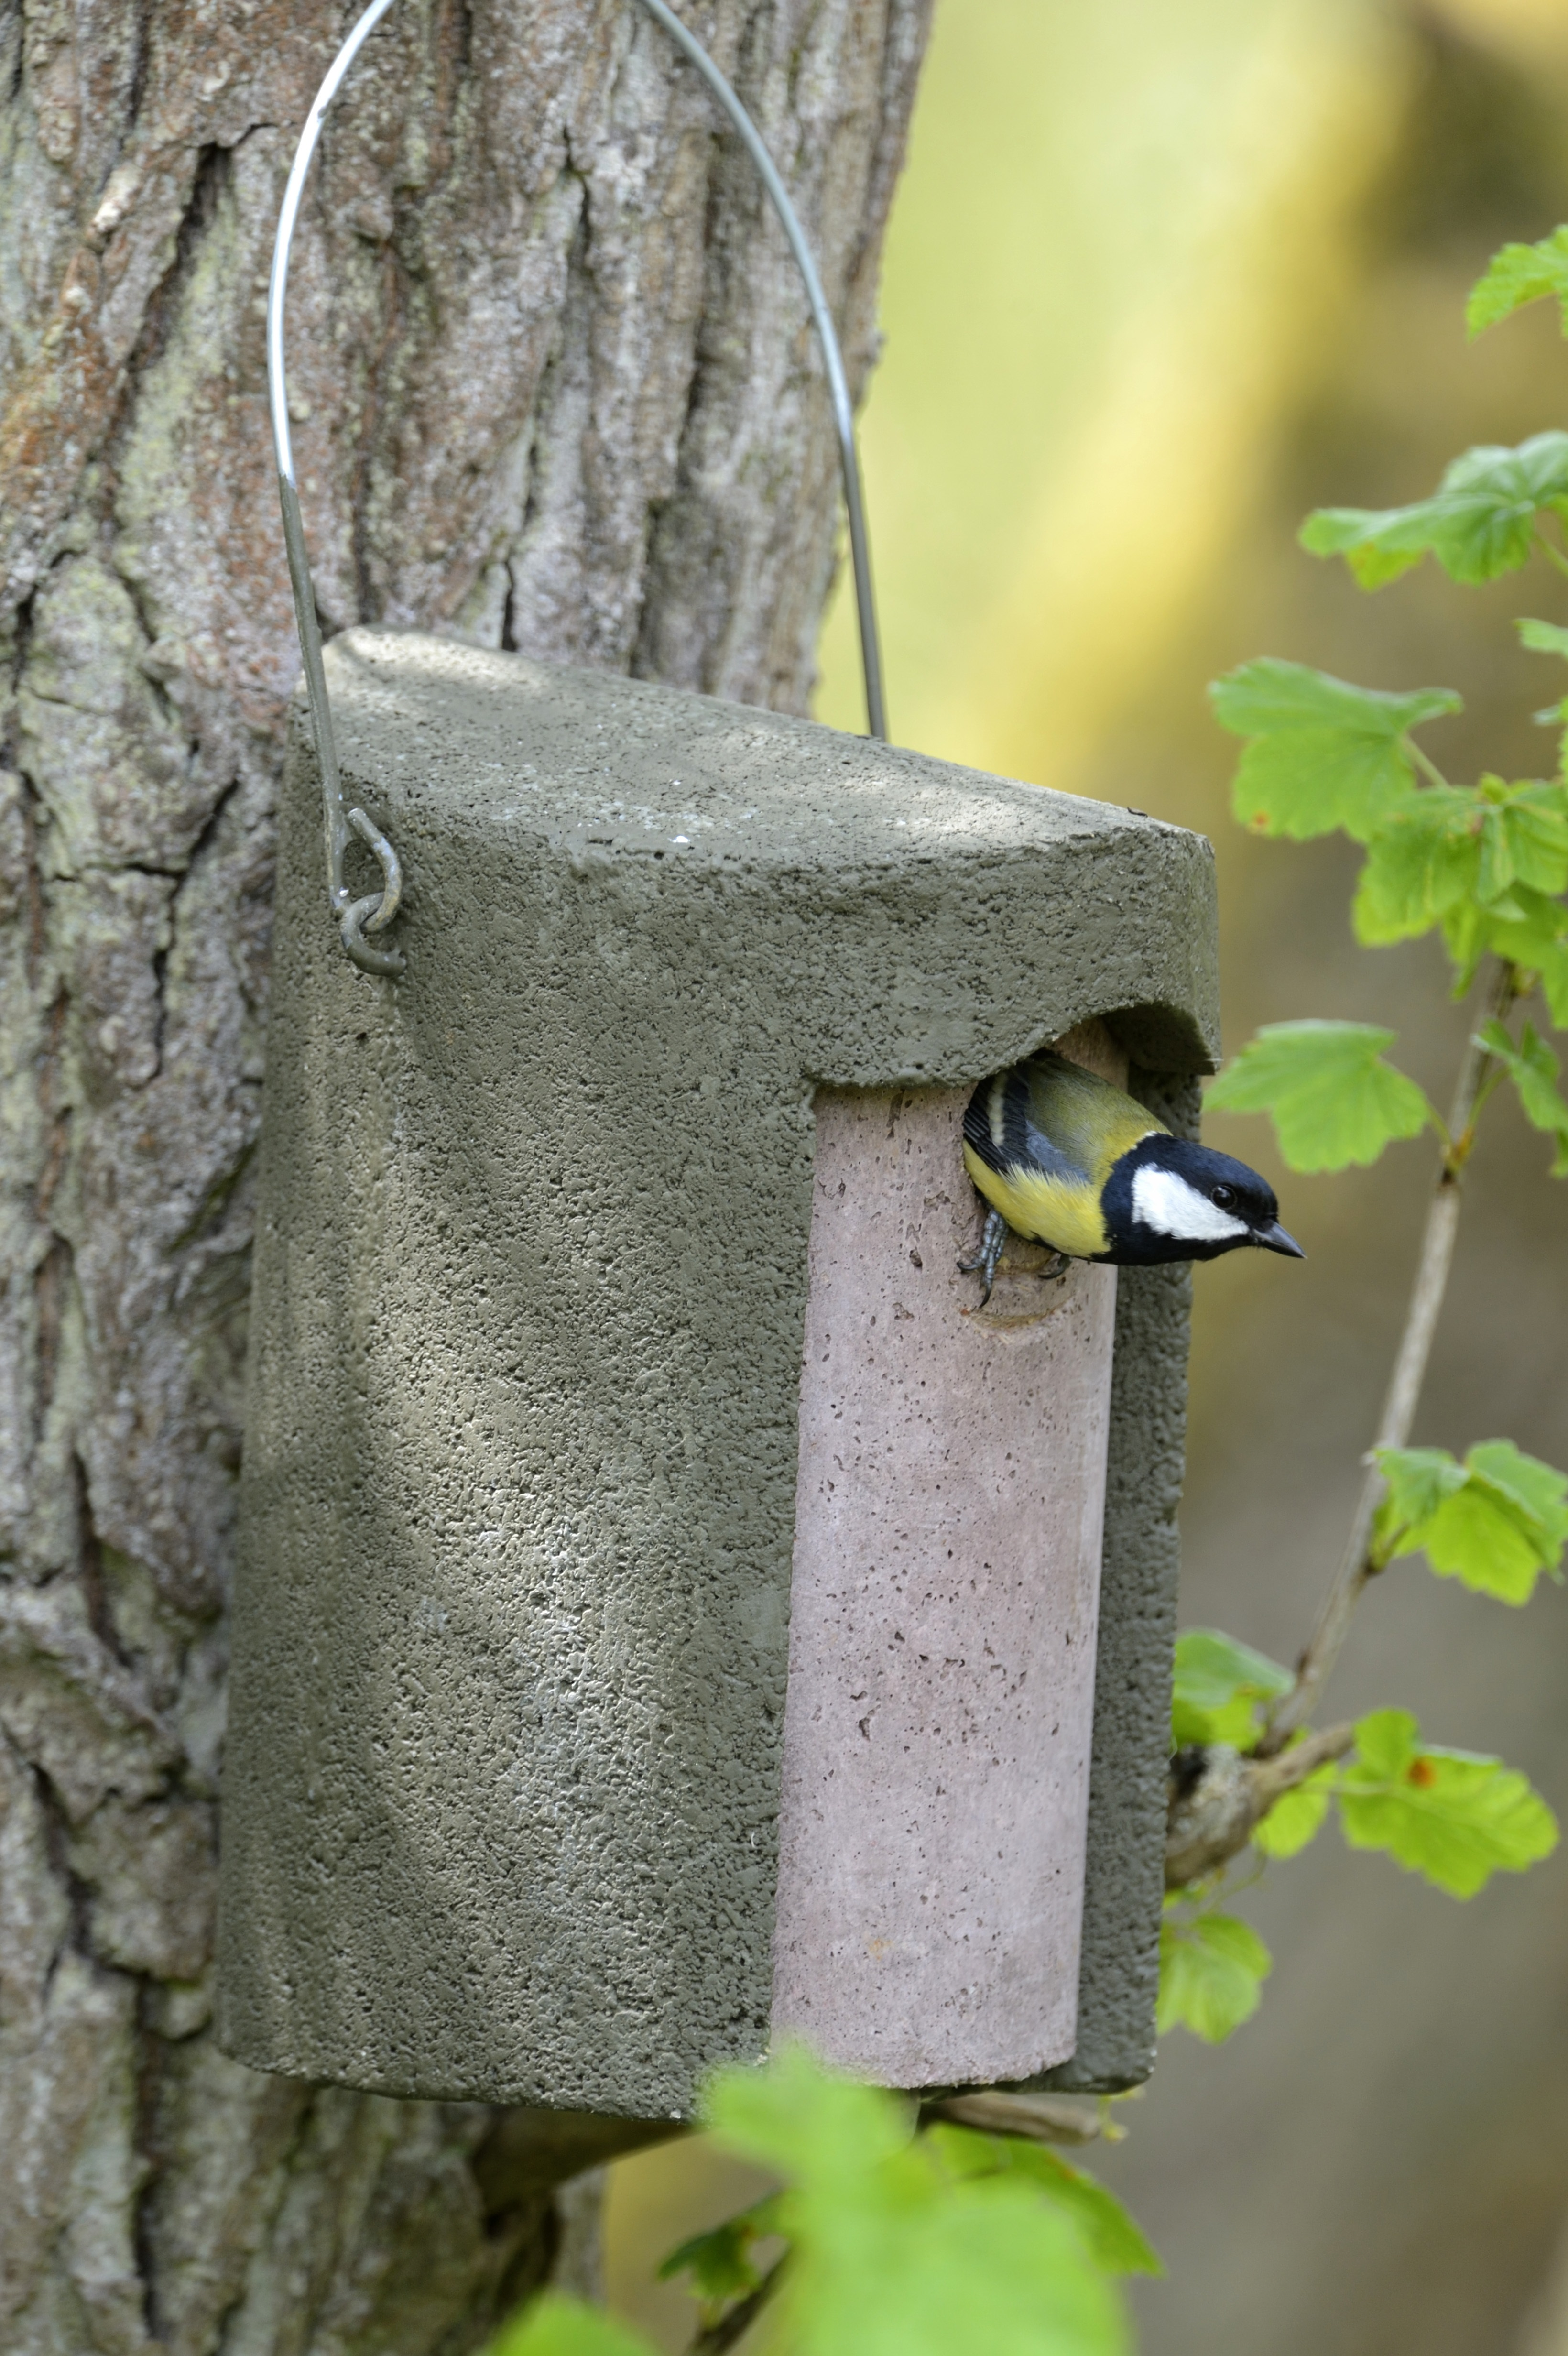 A great tit shelters in an insulated nest box. (Jacobi & Jayne/PA)